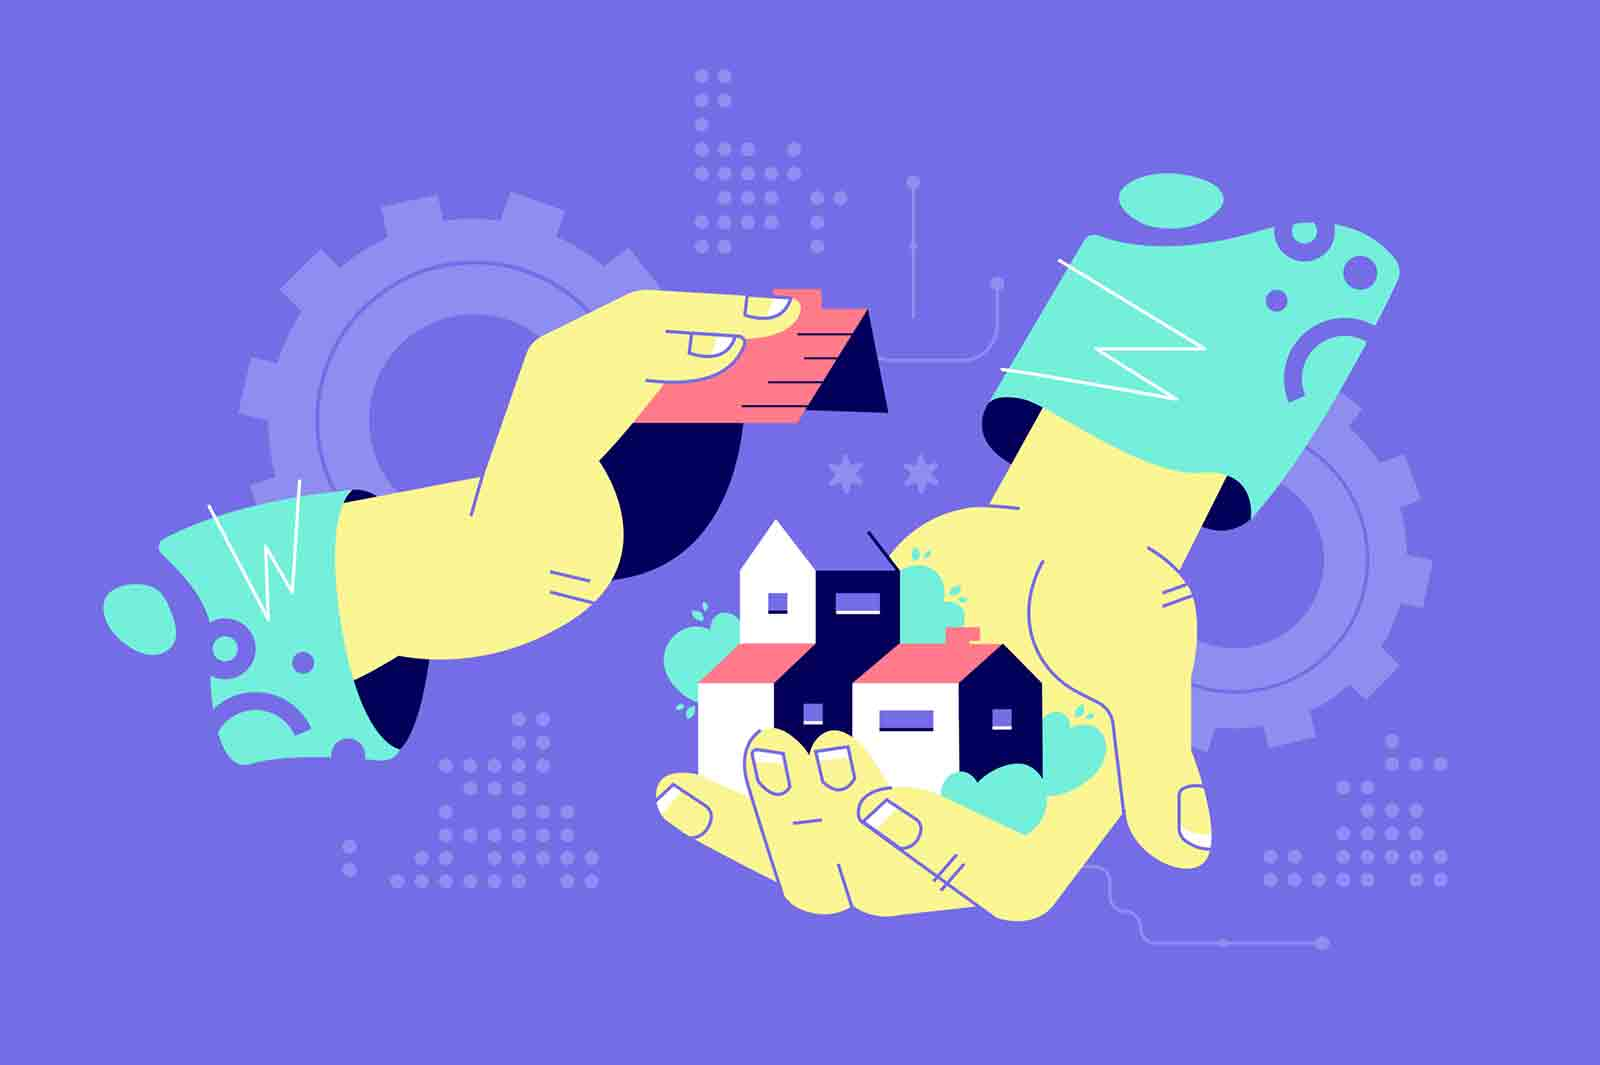 Hands holding building. Abstraction male hands building two-storey home construction. Building on purple background. Vector illustration.